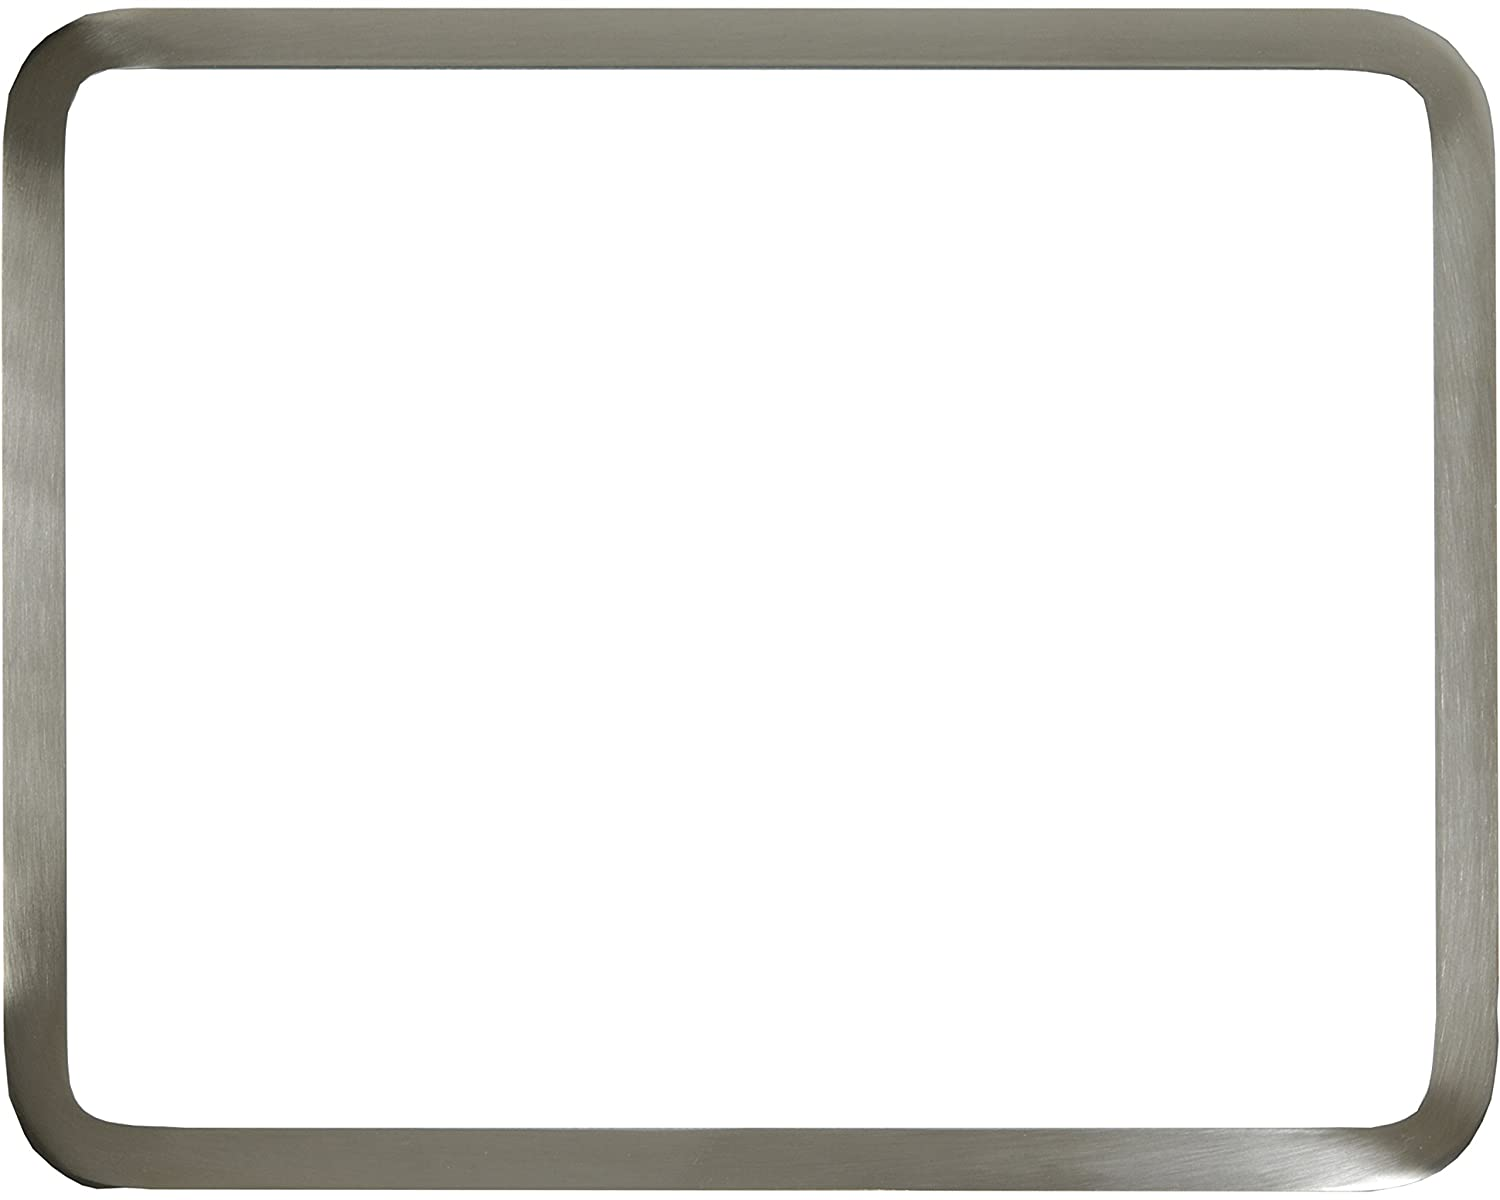 1S41215SS Vance Industries Vance 12 X 15 inch Stainless Steel Frame for Built-in Surface Saver Cutting Board